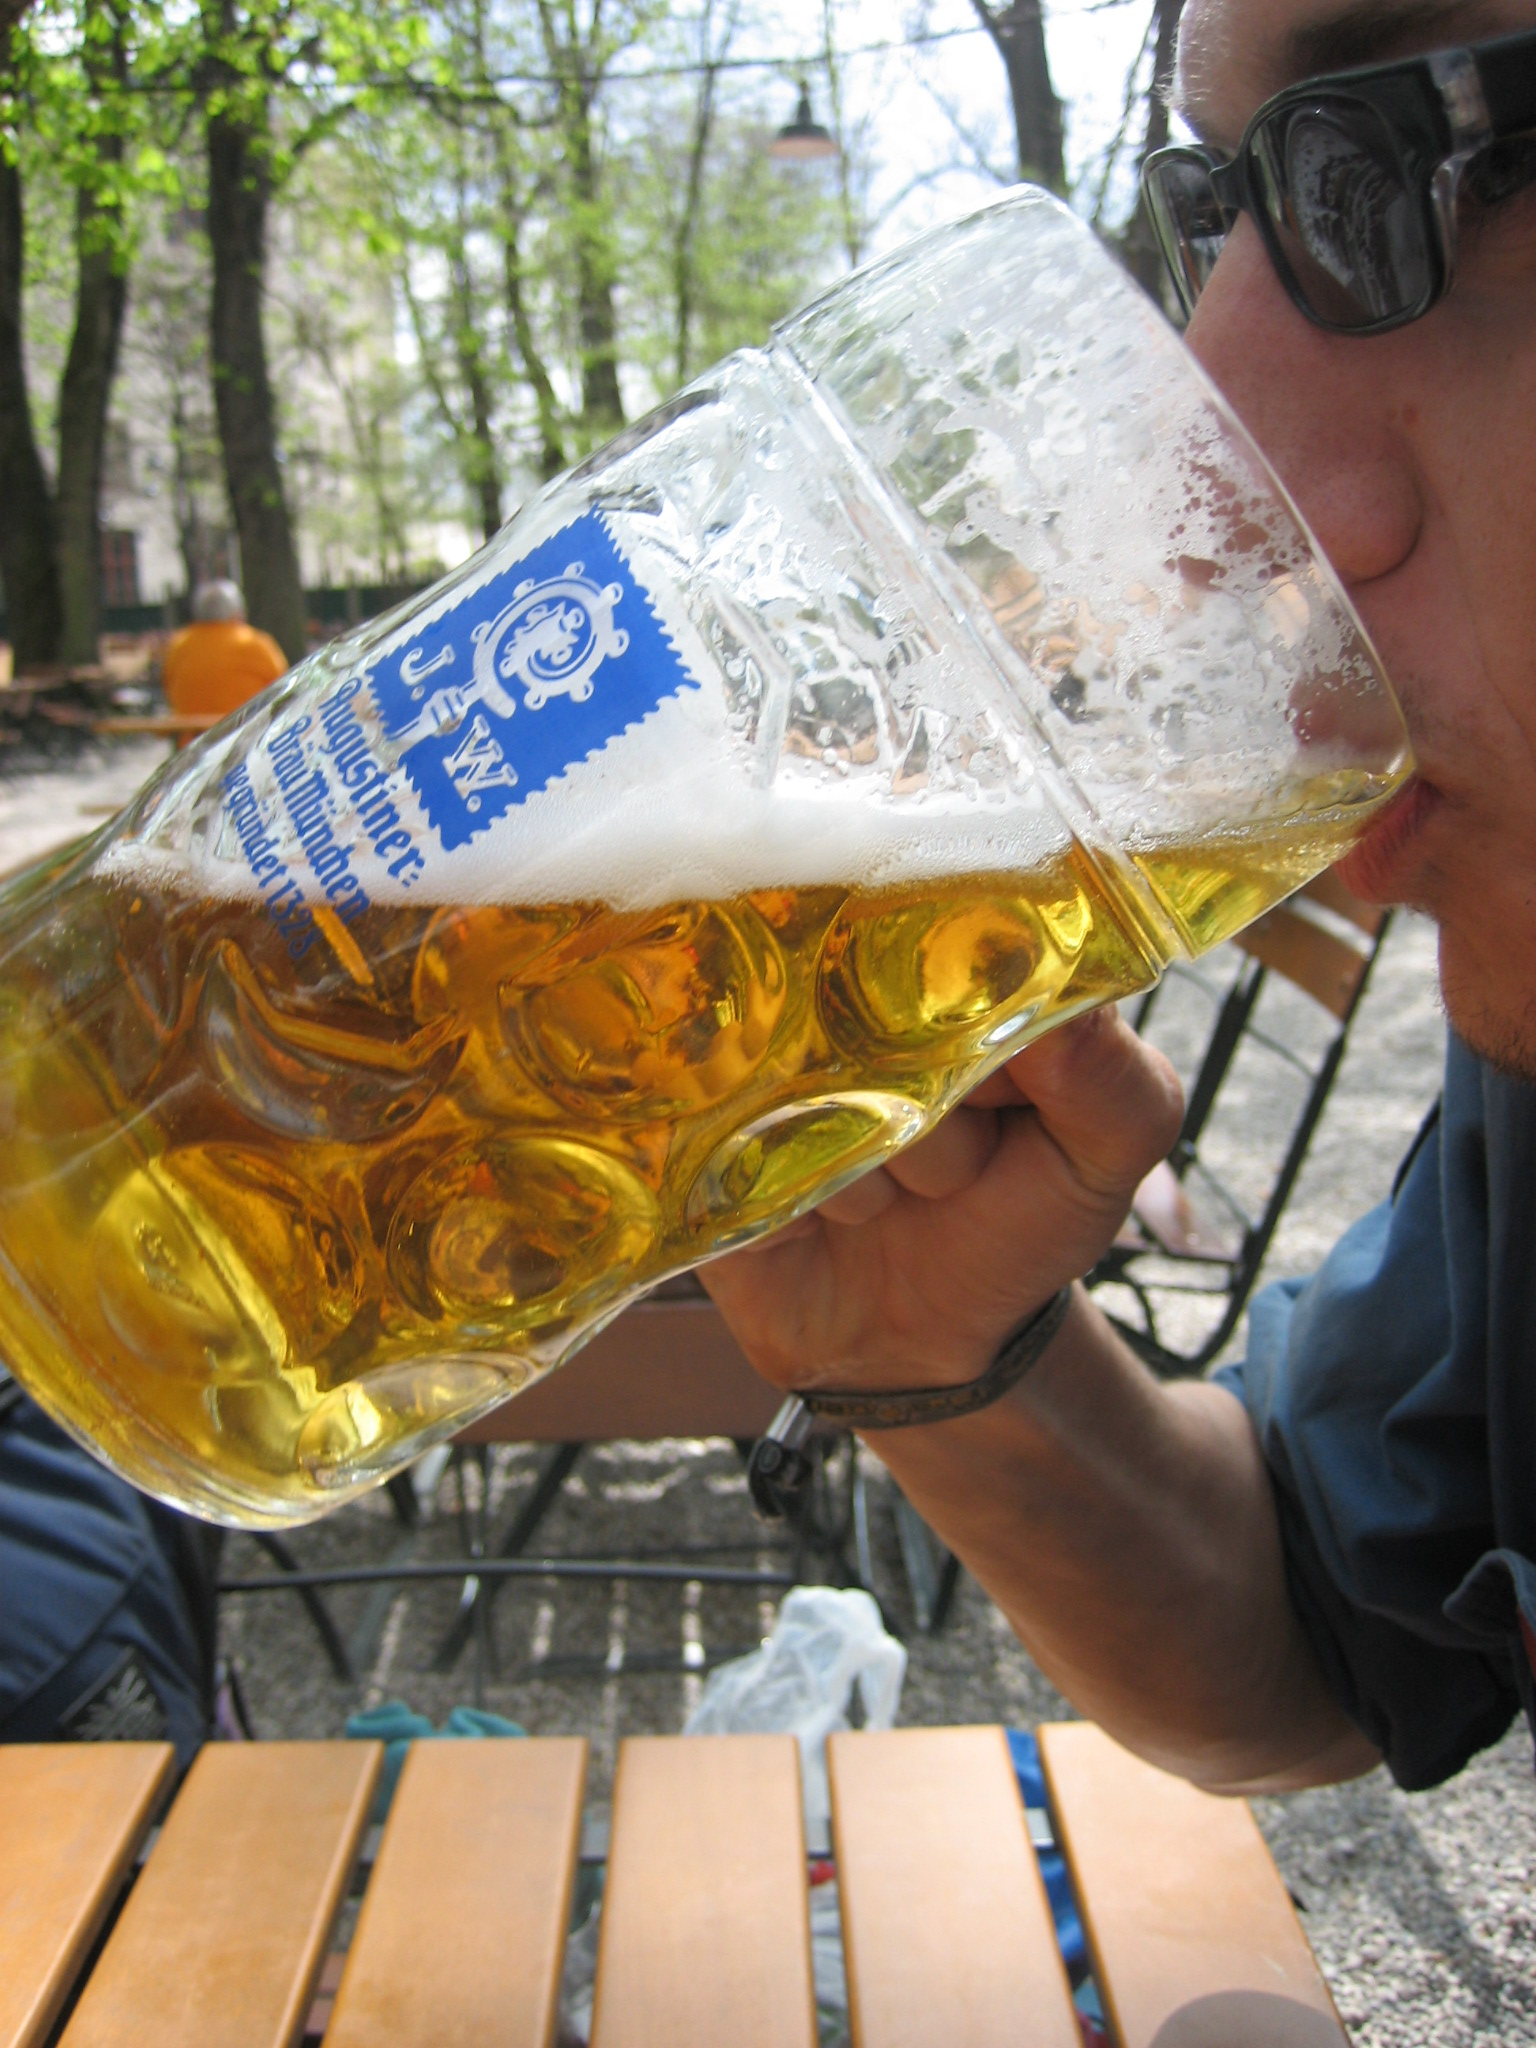 A Maßkrug is the style of glassware featured at German beer festivals, especially in Bavaria, such as Munich's Oktoberfest. Photo taken by Martin Ortmann on April 23, 2006.